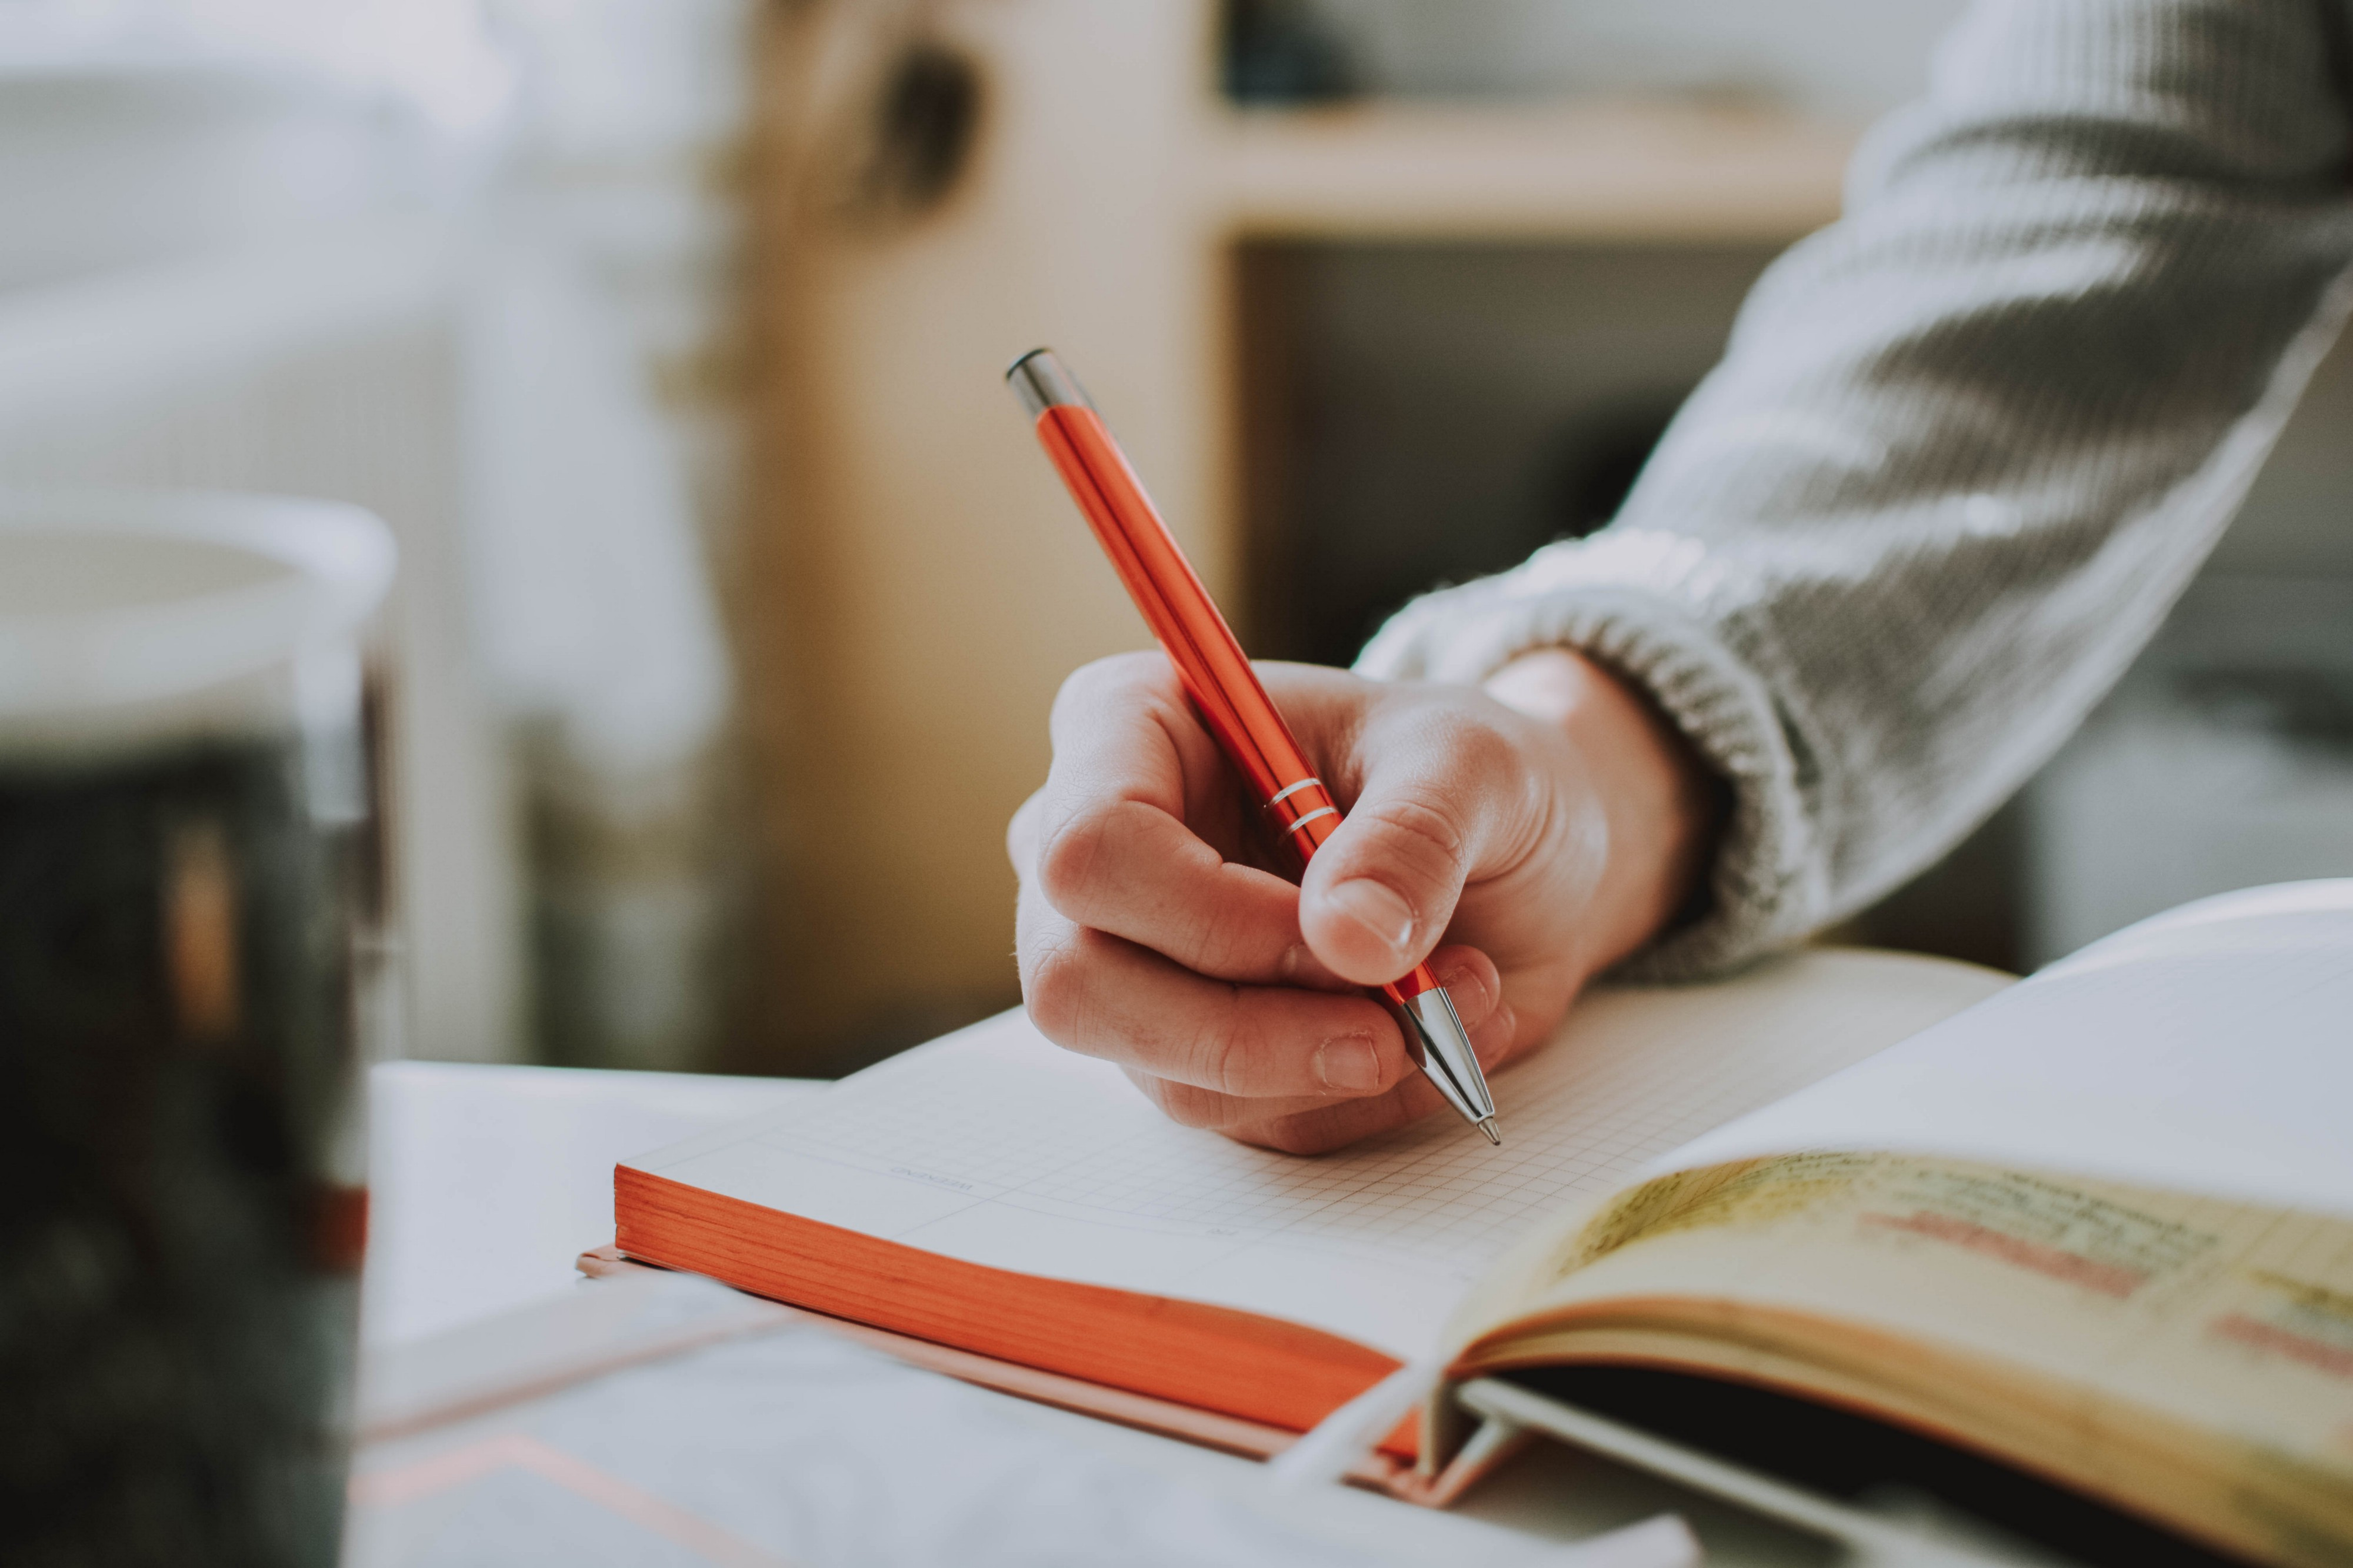 A person sits at a table writing with an orange coloured pen in a thick notebook.